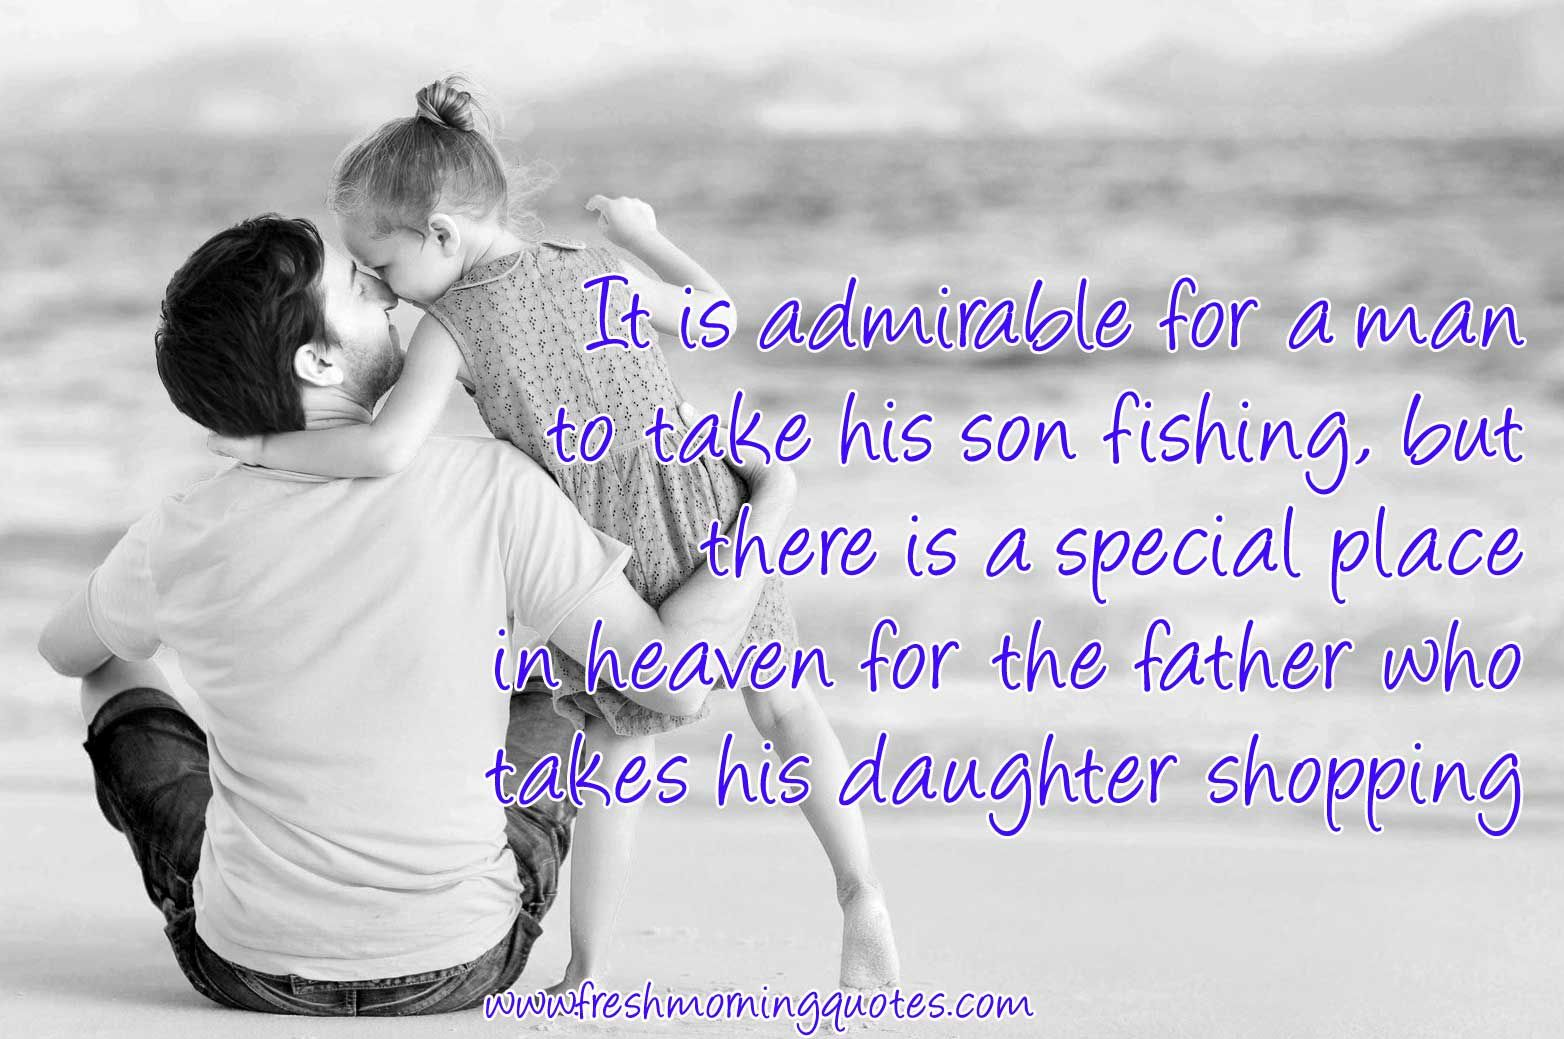 9 Sweetest Father Daughter Quotes with Images